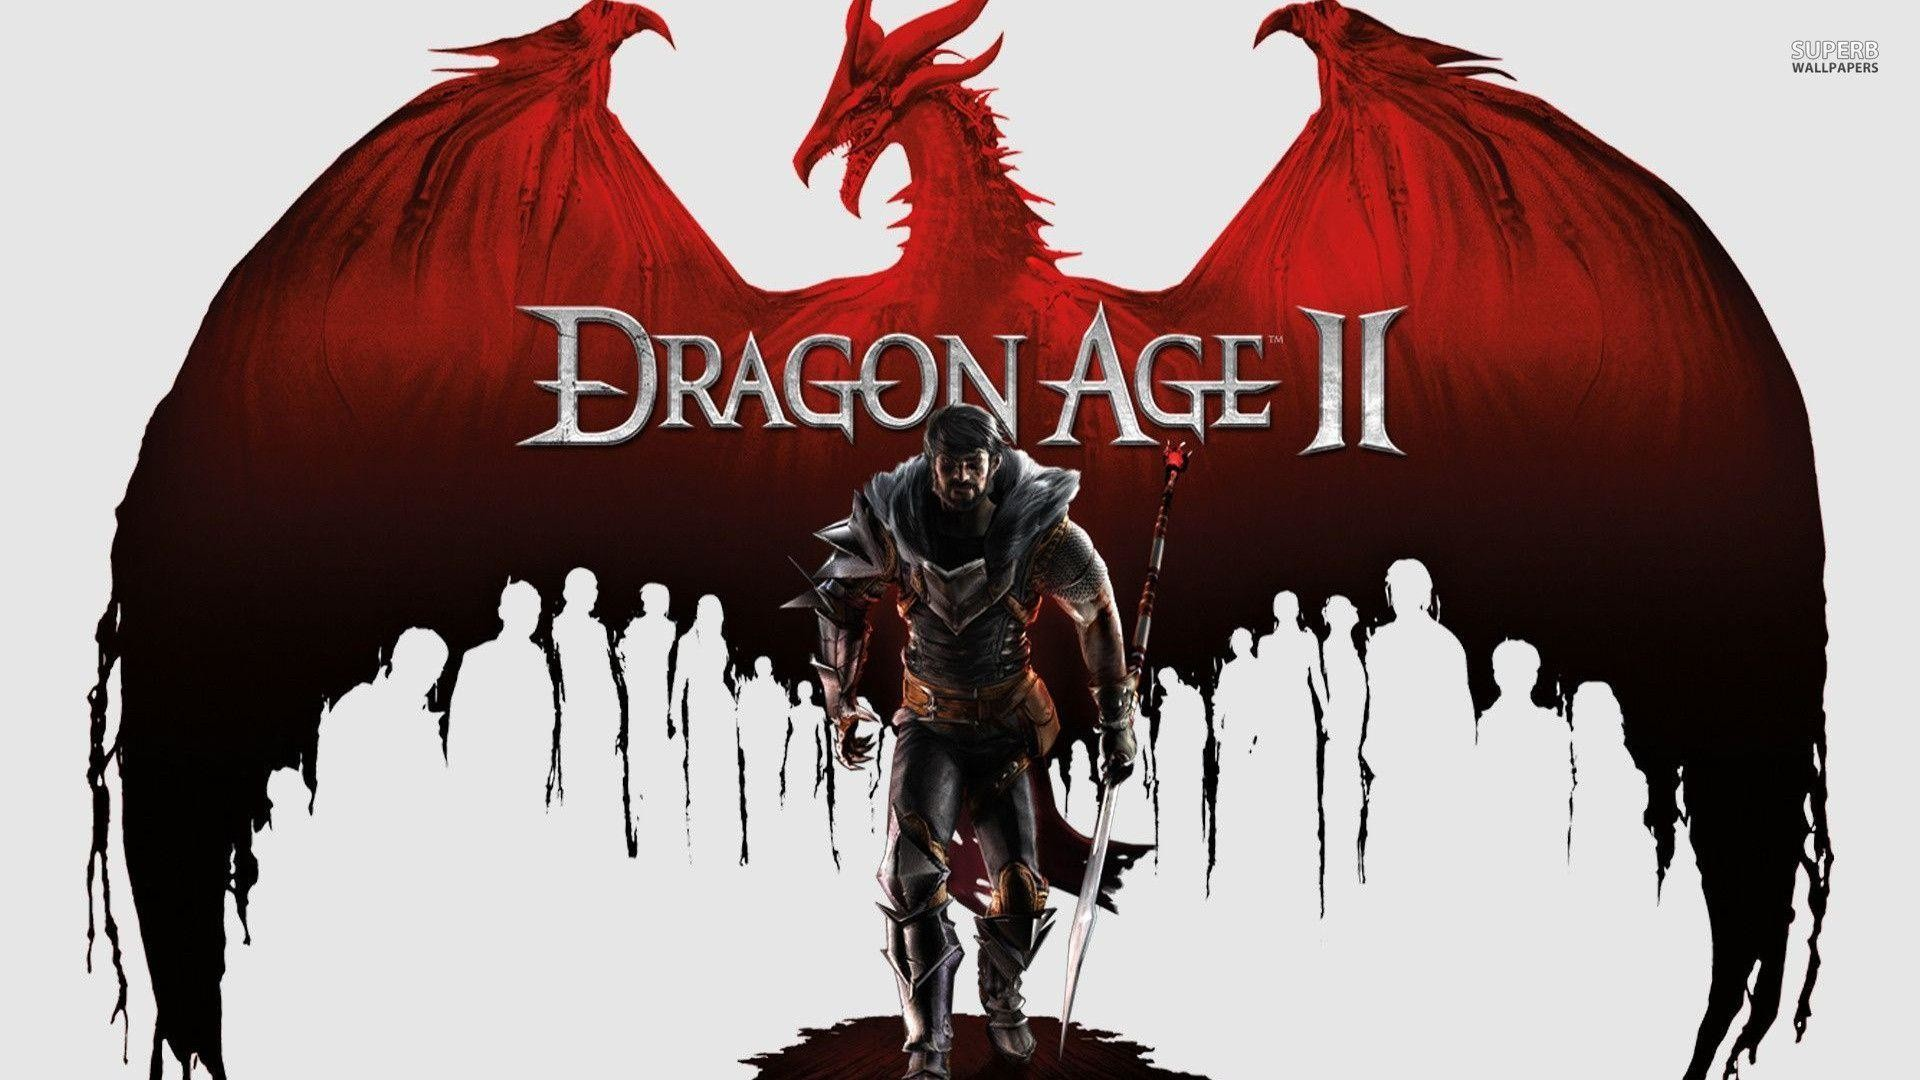 1920x1080 Dragon Age II wallpaper - Game wallpapers - #